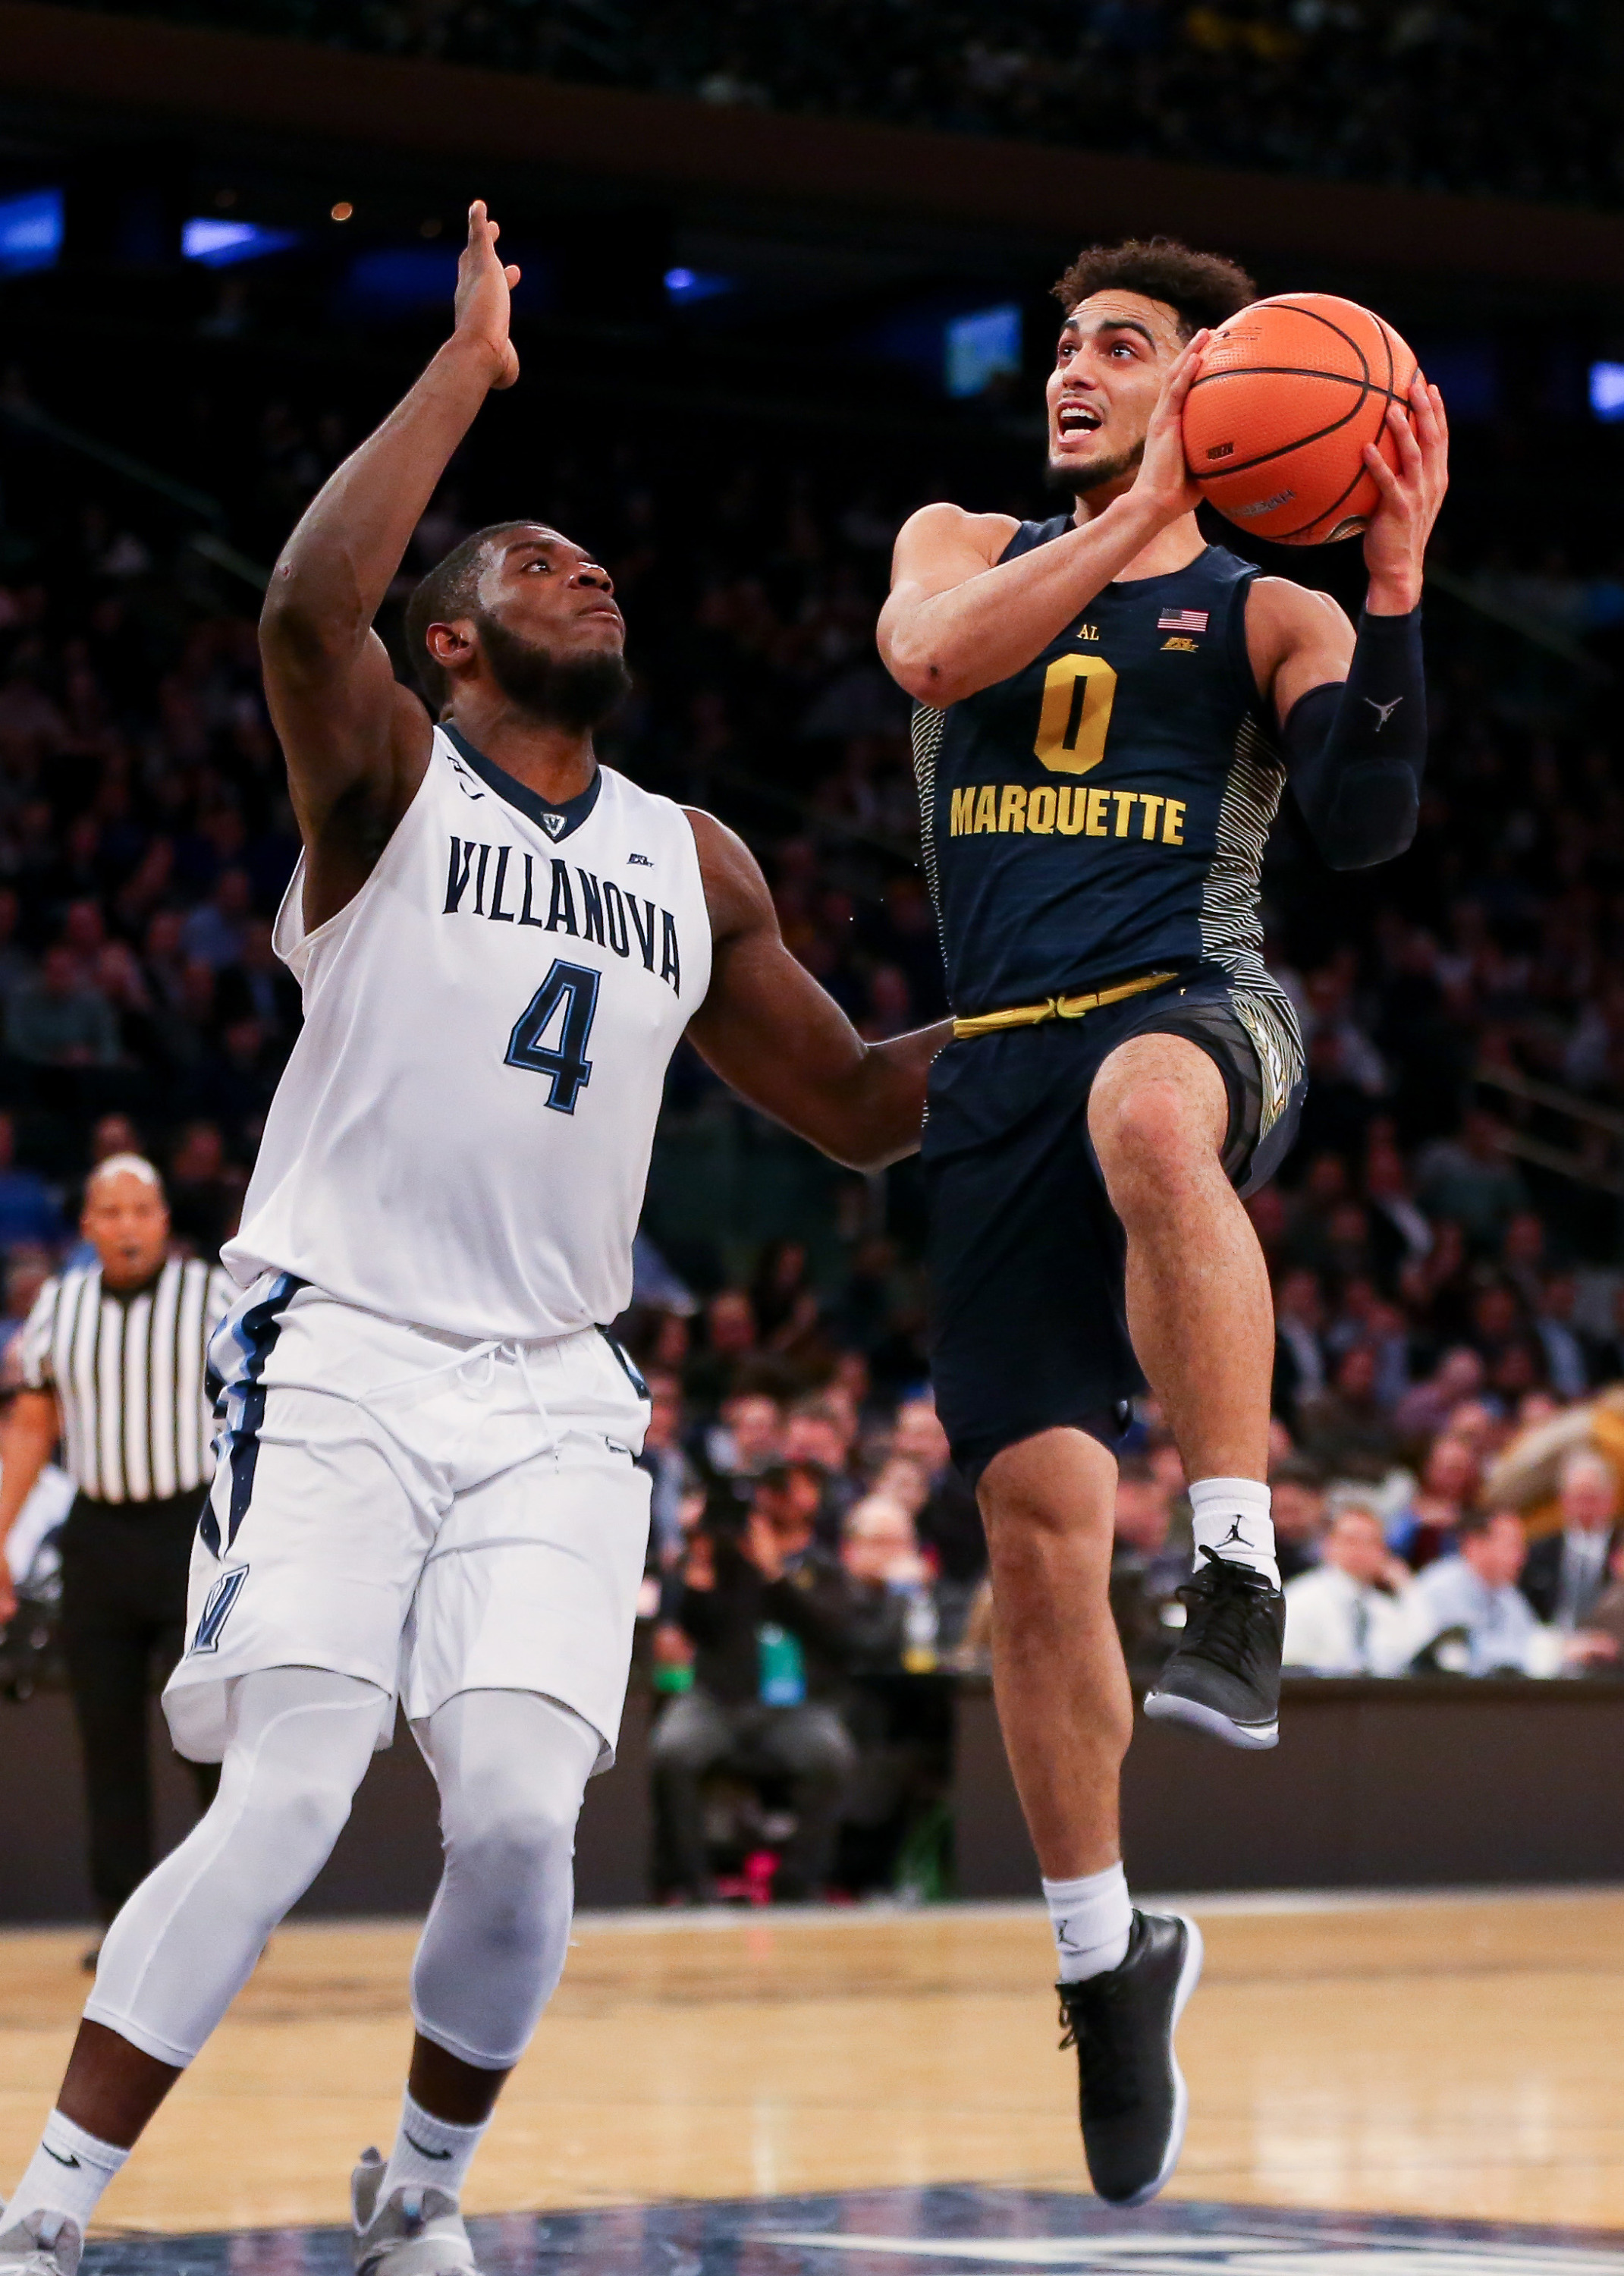 Markus Howard had 16 points in the first half as Marquette trailed by seven at the break (photo: Vincent Carchietta, USA TODAY Sports)